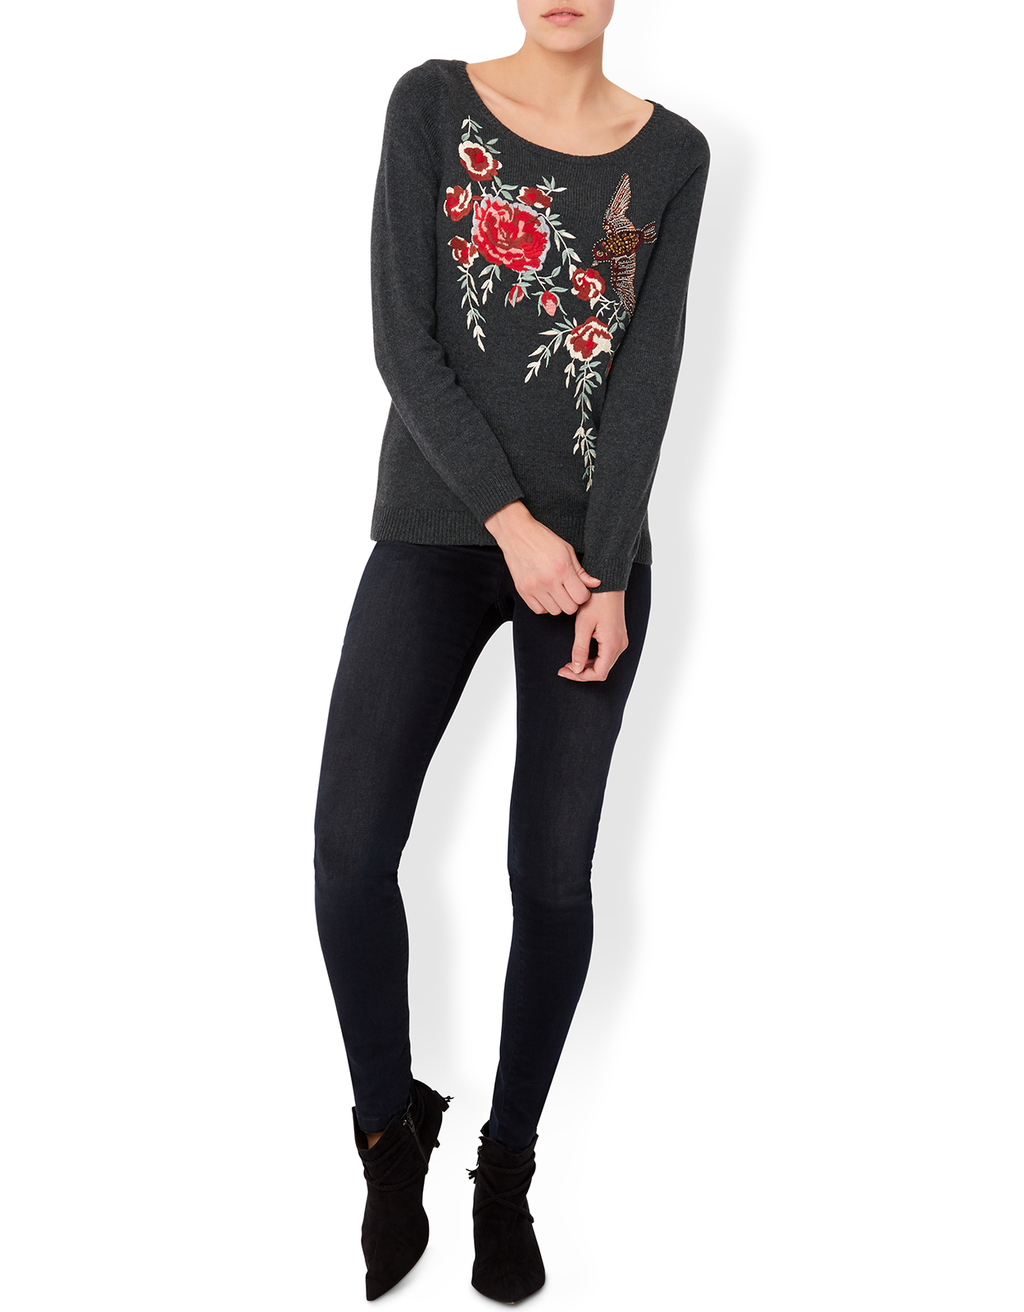 Elle Embroidery Bird Jumper - neckline: round neck; style: standard; secondary colour: true red; predominant colour: black; occasions: casual; length: standard; fibres: cotton - mix; fit: slim fit; sleeve length: long sleeve; sleeve style: standard; pattern type: fabric; pattern size: light/subtle; pattern: patterned/print; texture group: jersey - stretchy/drapey; embellishment: embroidered; multicoloured: multicoloured; season: a/w 2016; wardrobe: highlight